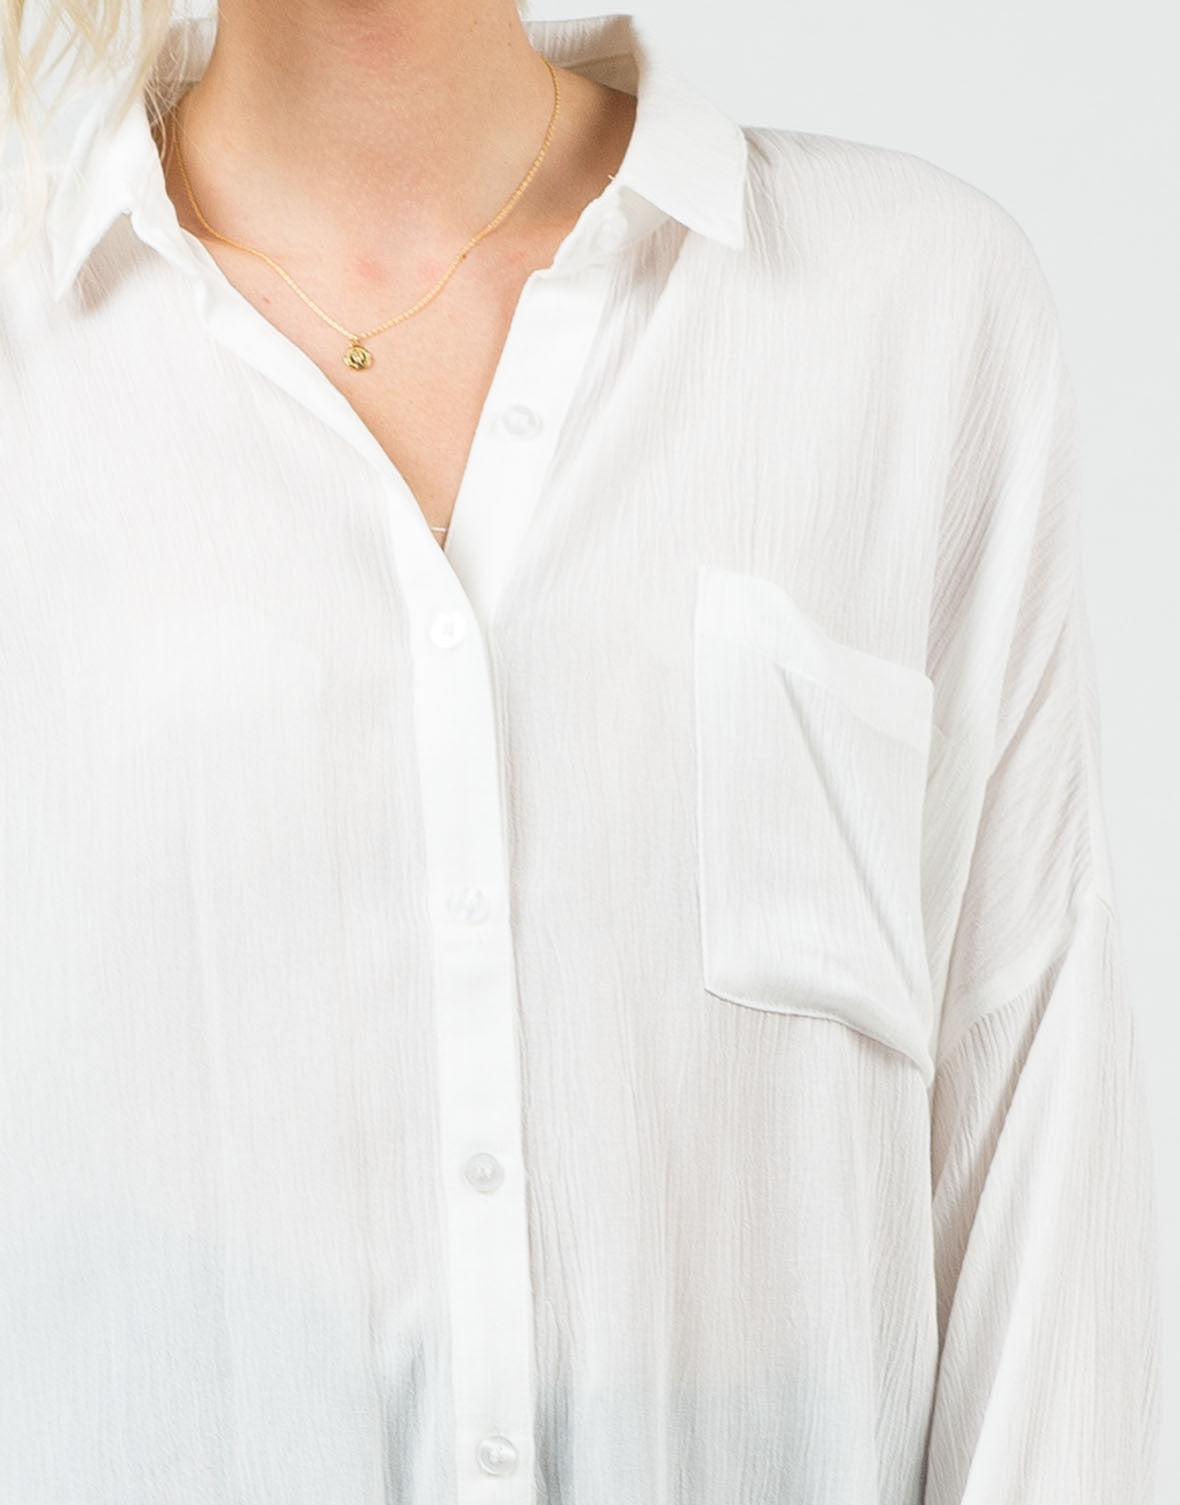 Detail of Long Sleeve Gauze Button Up